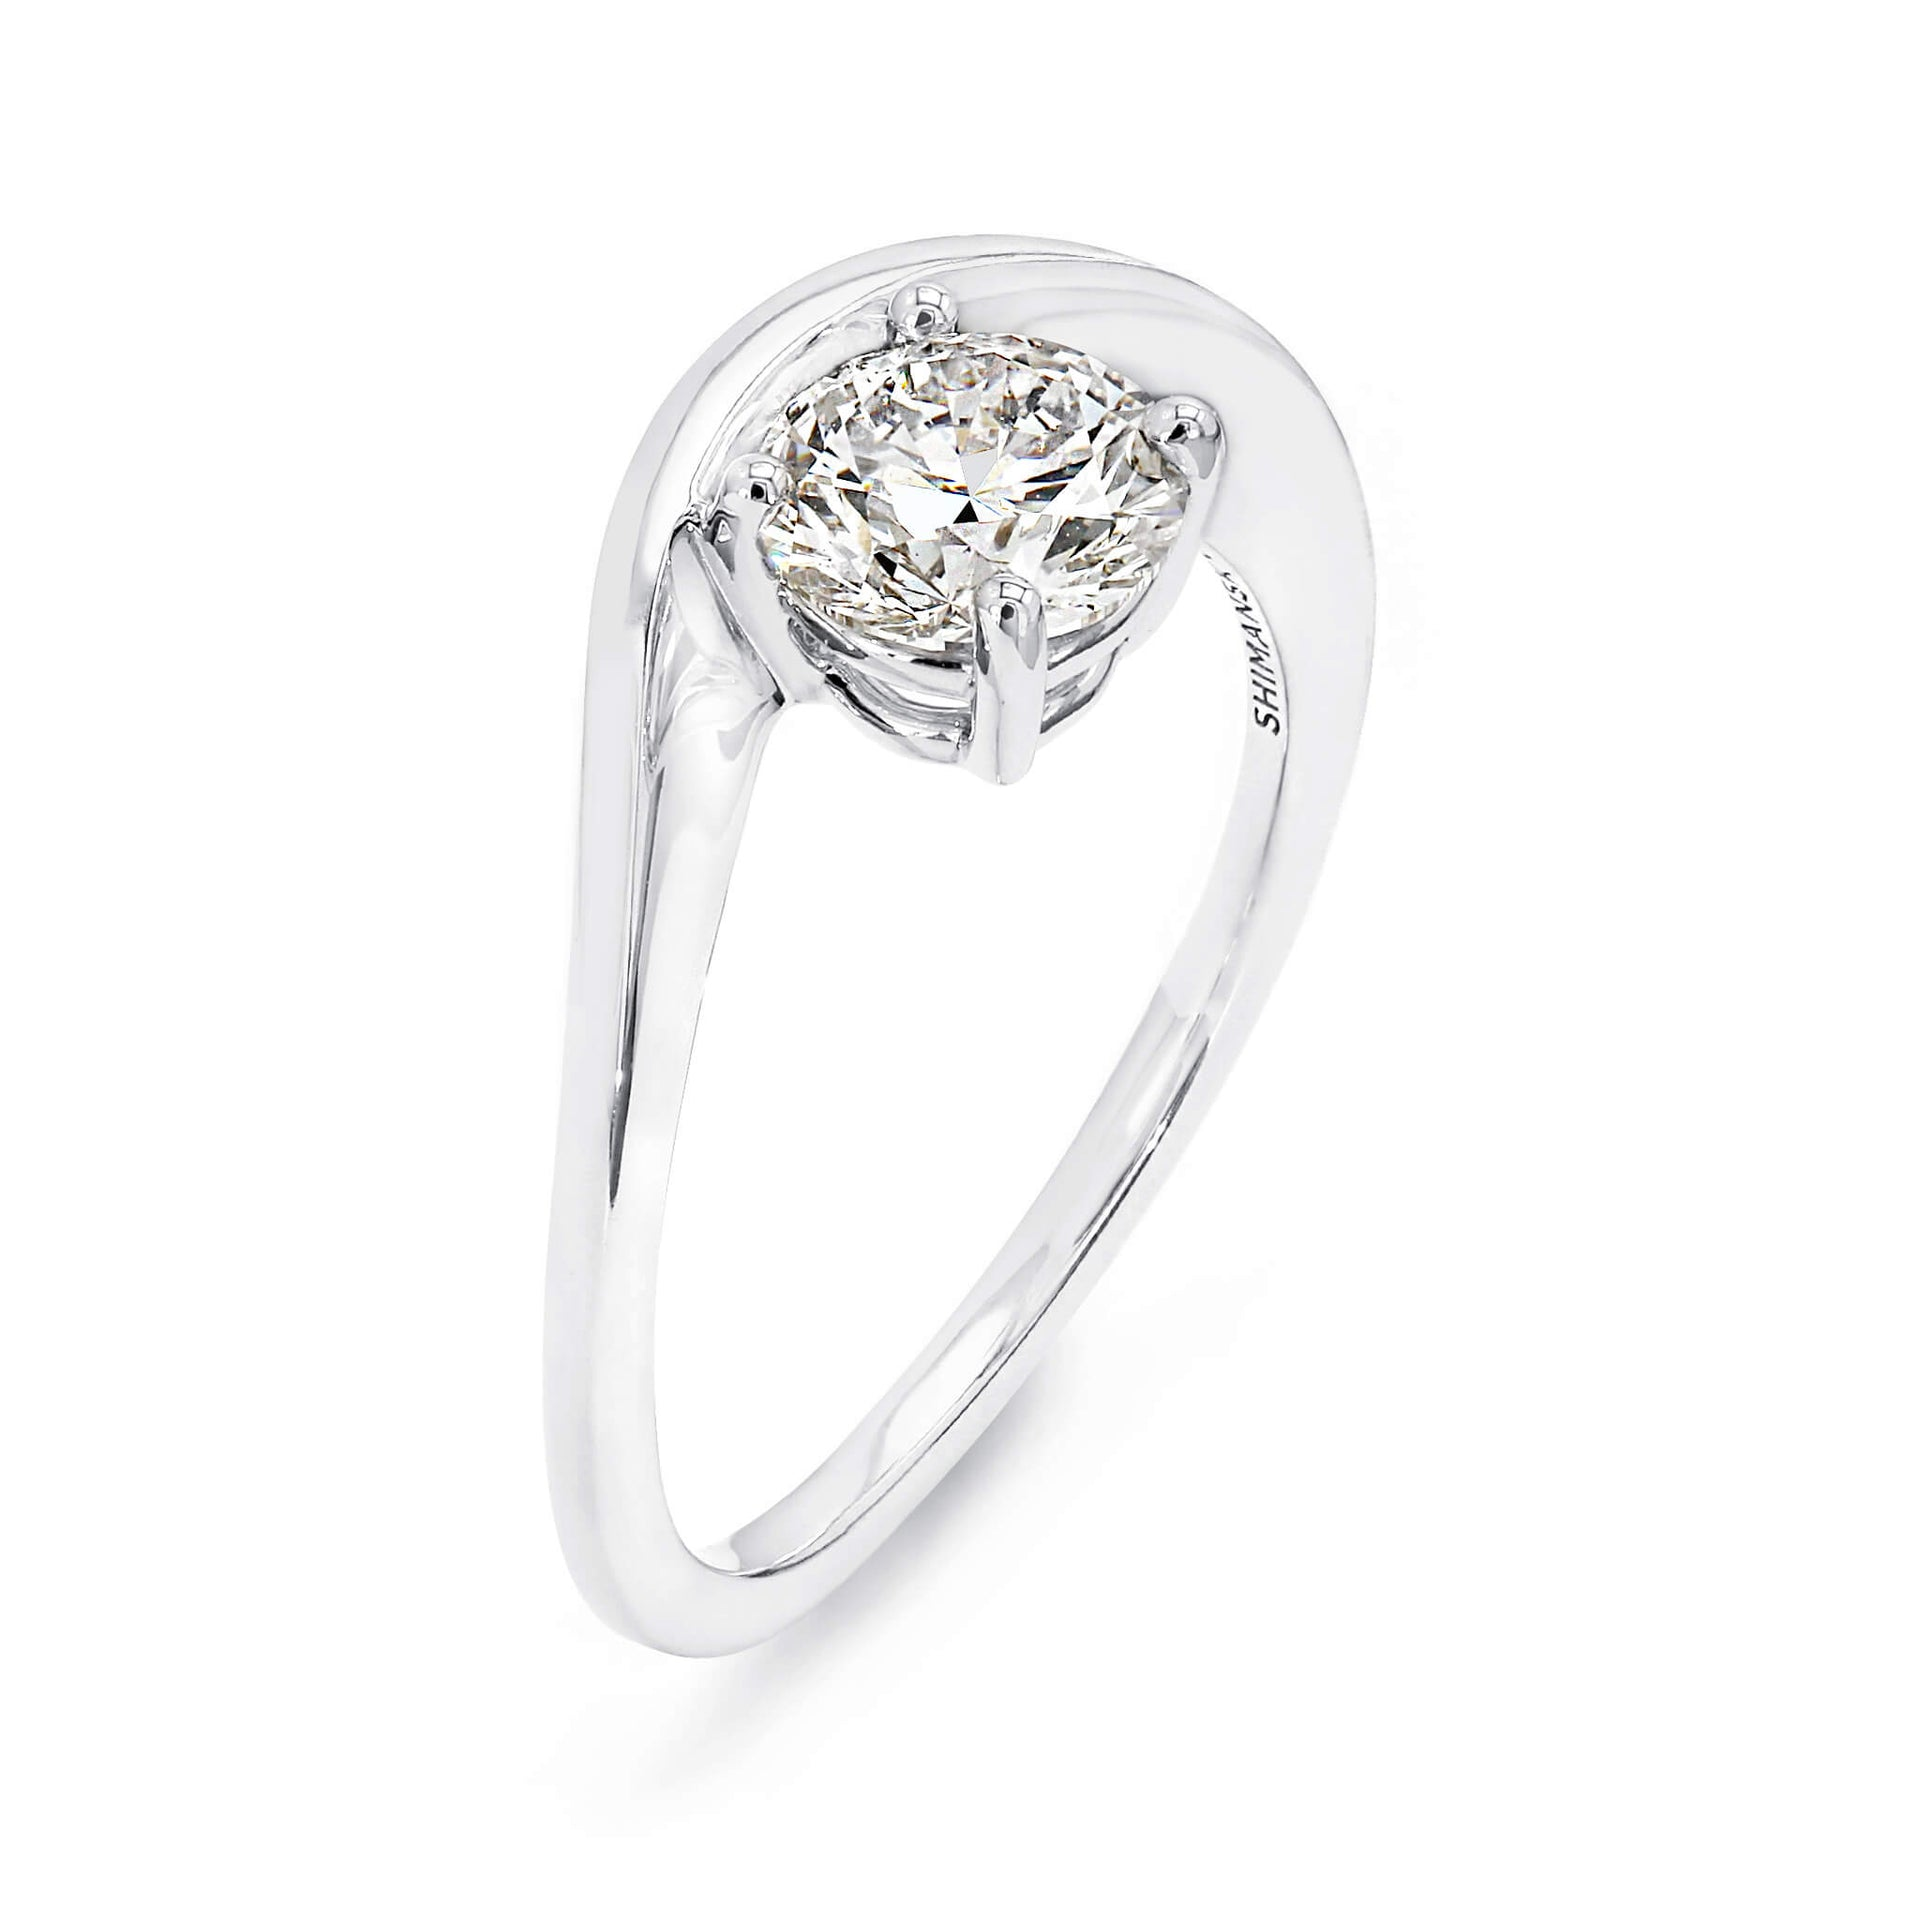 1.04ct Silhouette Solitaire Diamond Engagement Ring in 18K White Gold 3D View